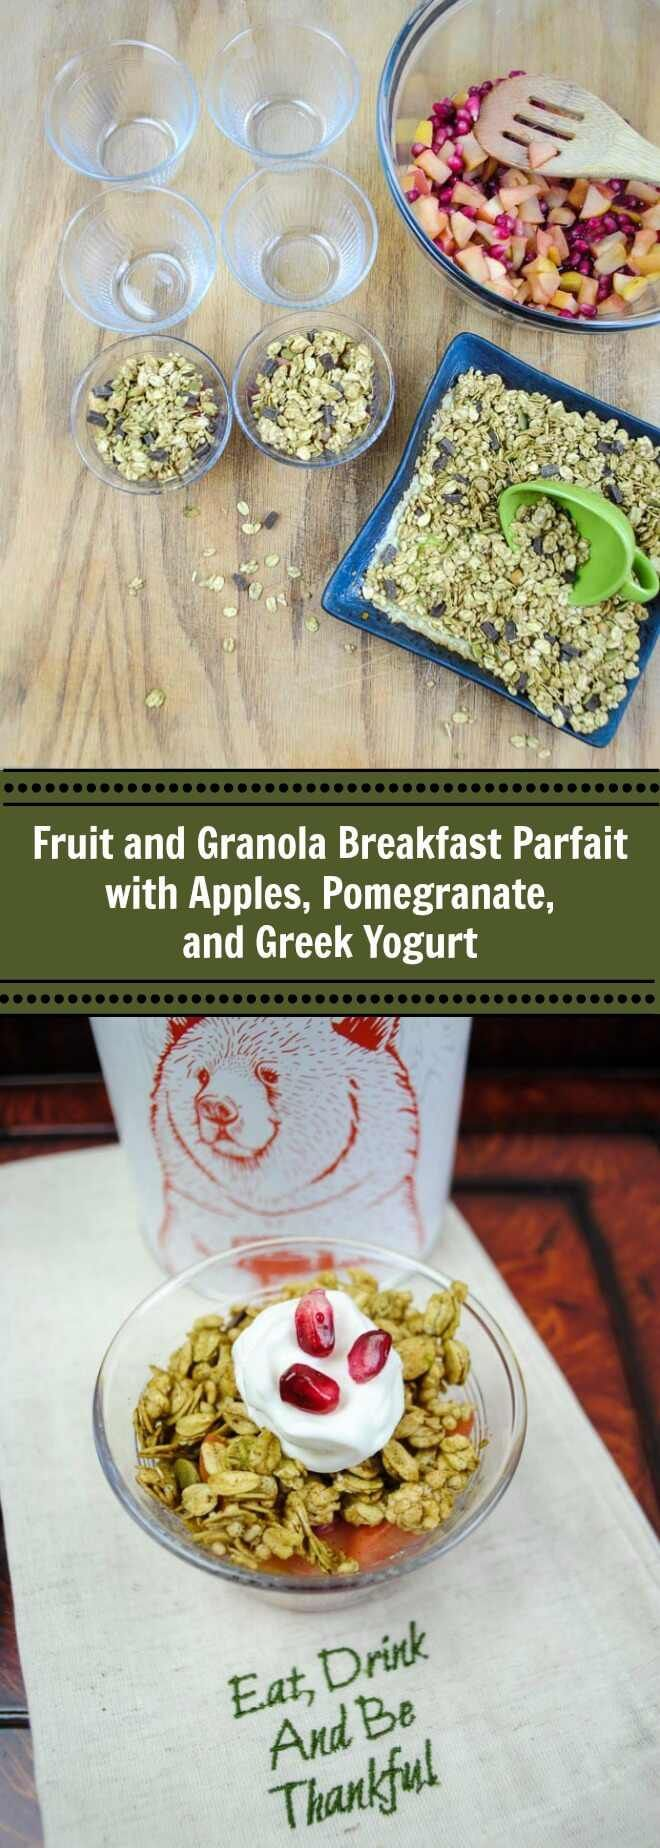 Pomegranate seeds and apples give this breakfast parfait topped with crunchy granola a festive presentation perfect for a holiday brunch. (Sponsored by Bear Naked Granola)